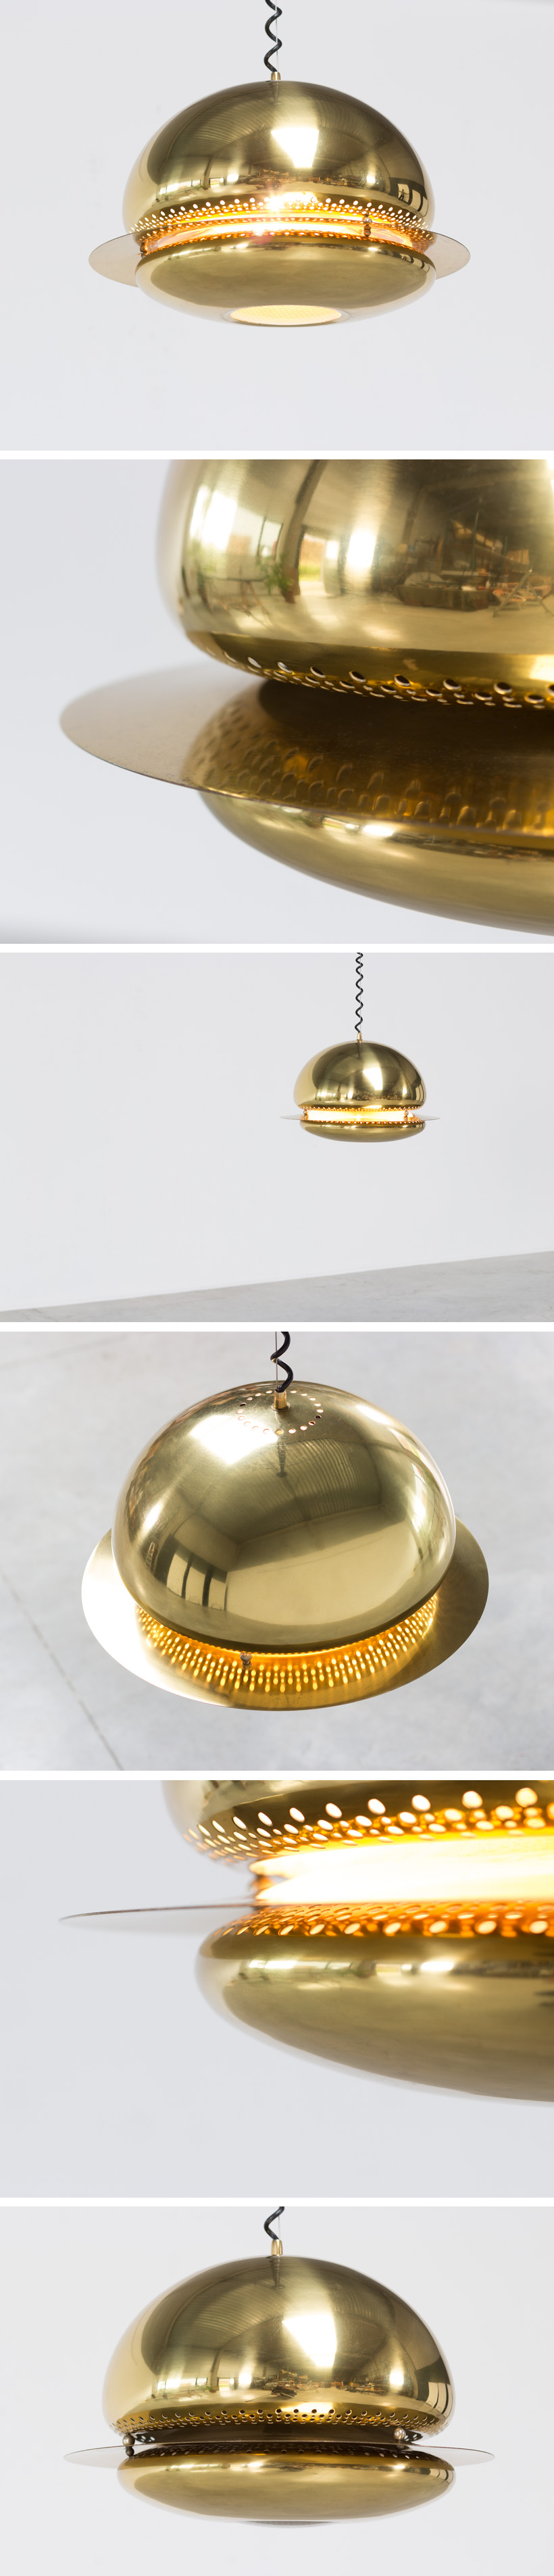 Tobia Scarpa brass Nictea ceiling lamp for flos Italy 1961 Large